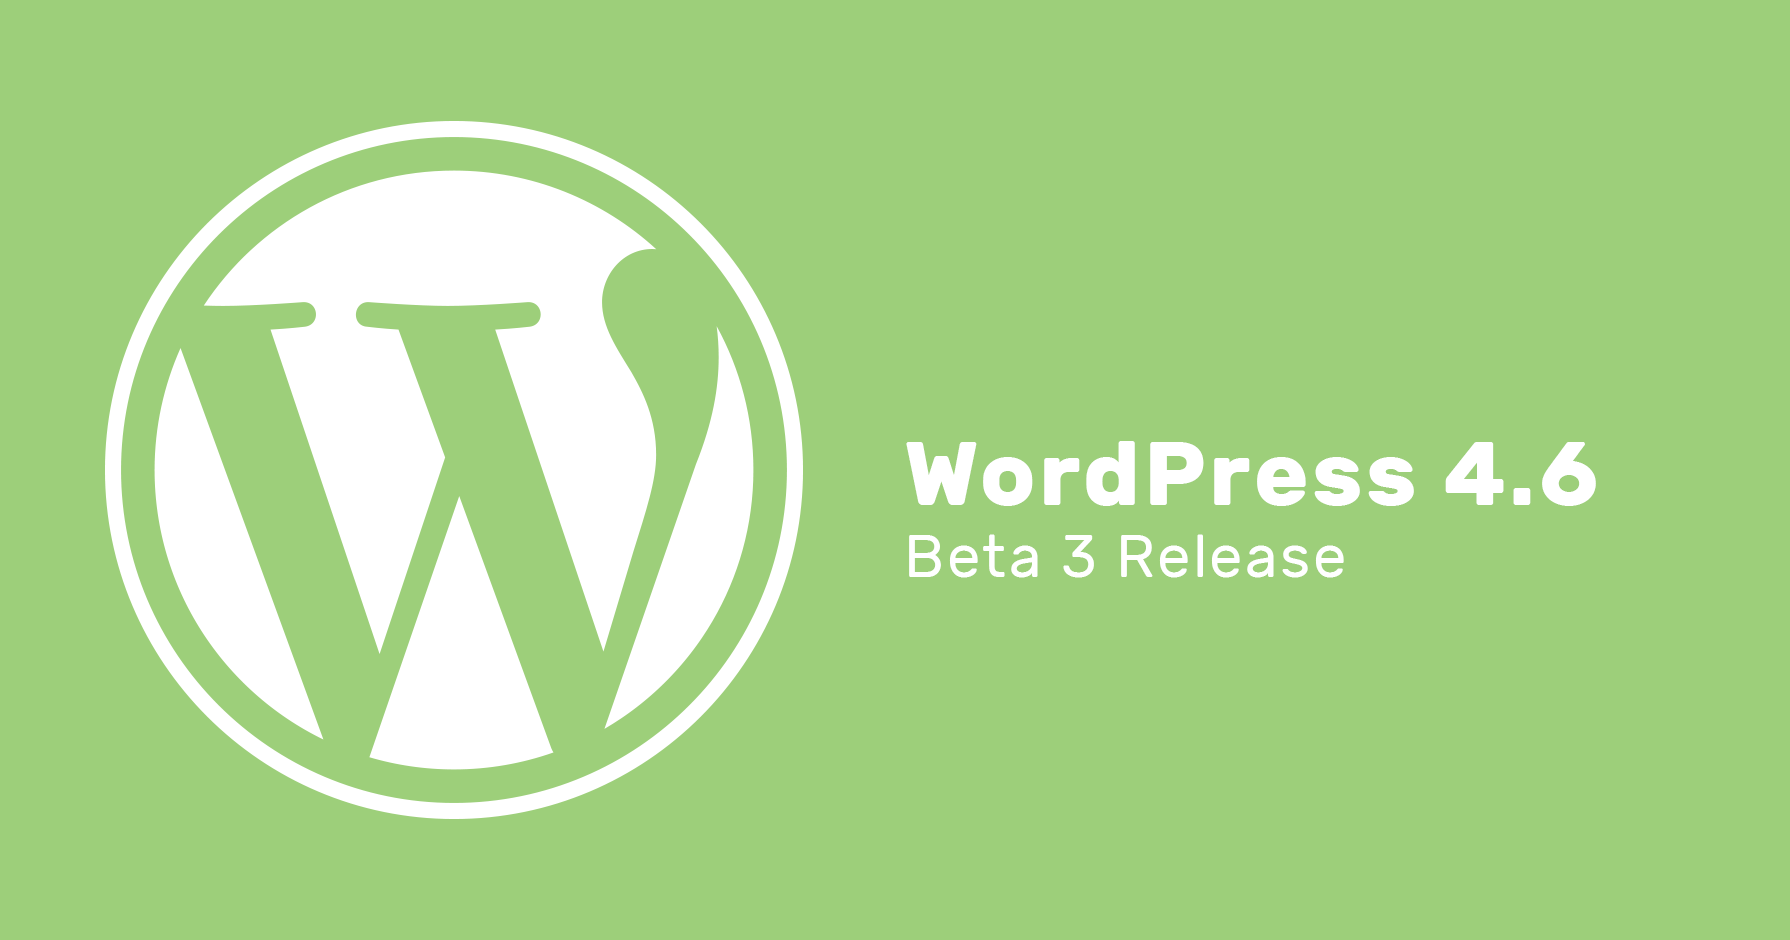 WordPress 4.6 Beta 3 release